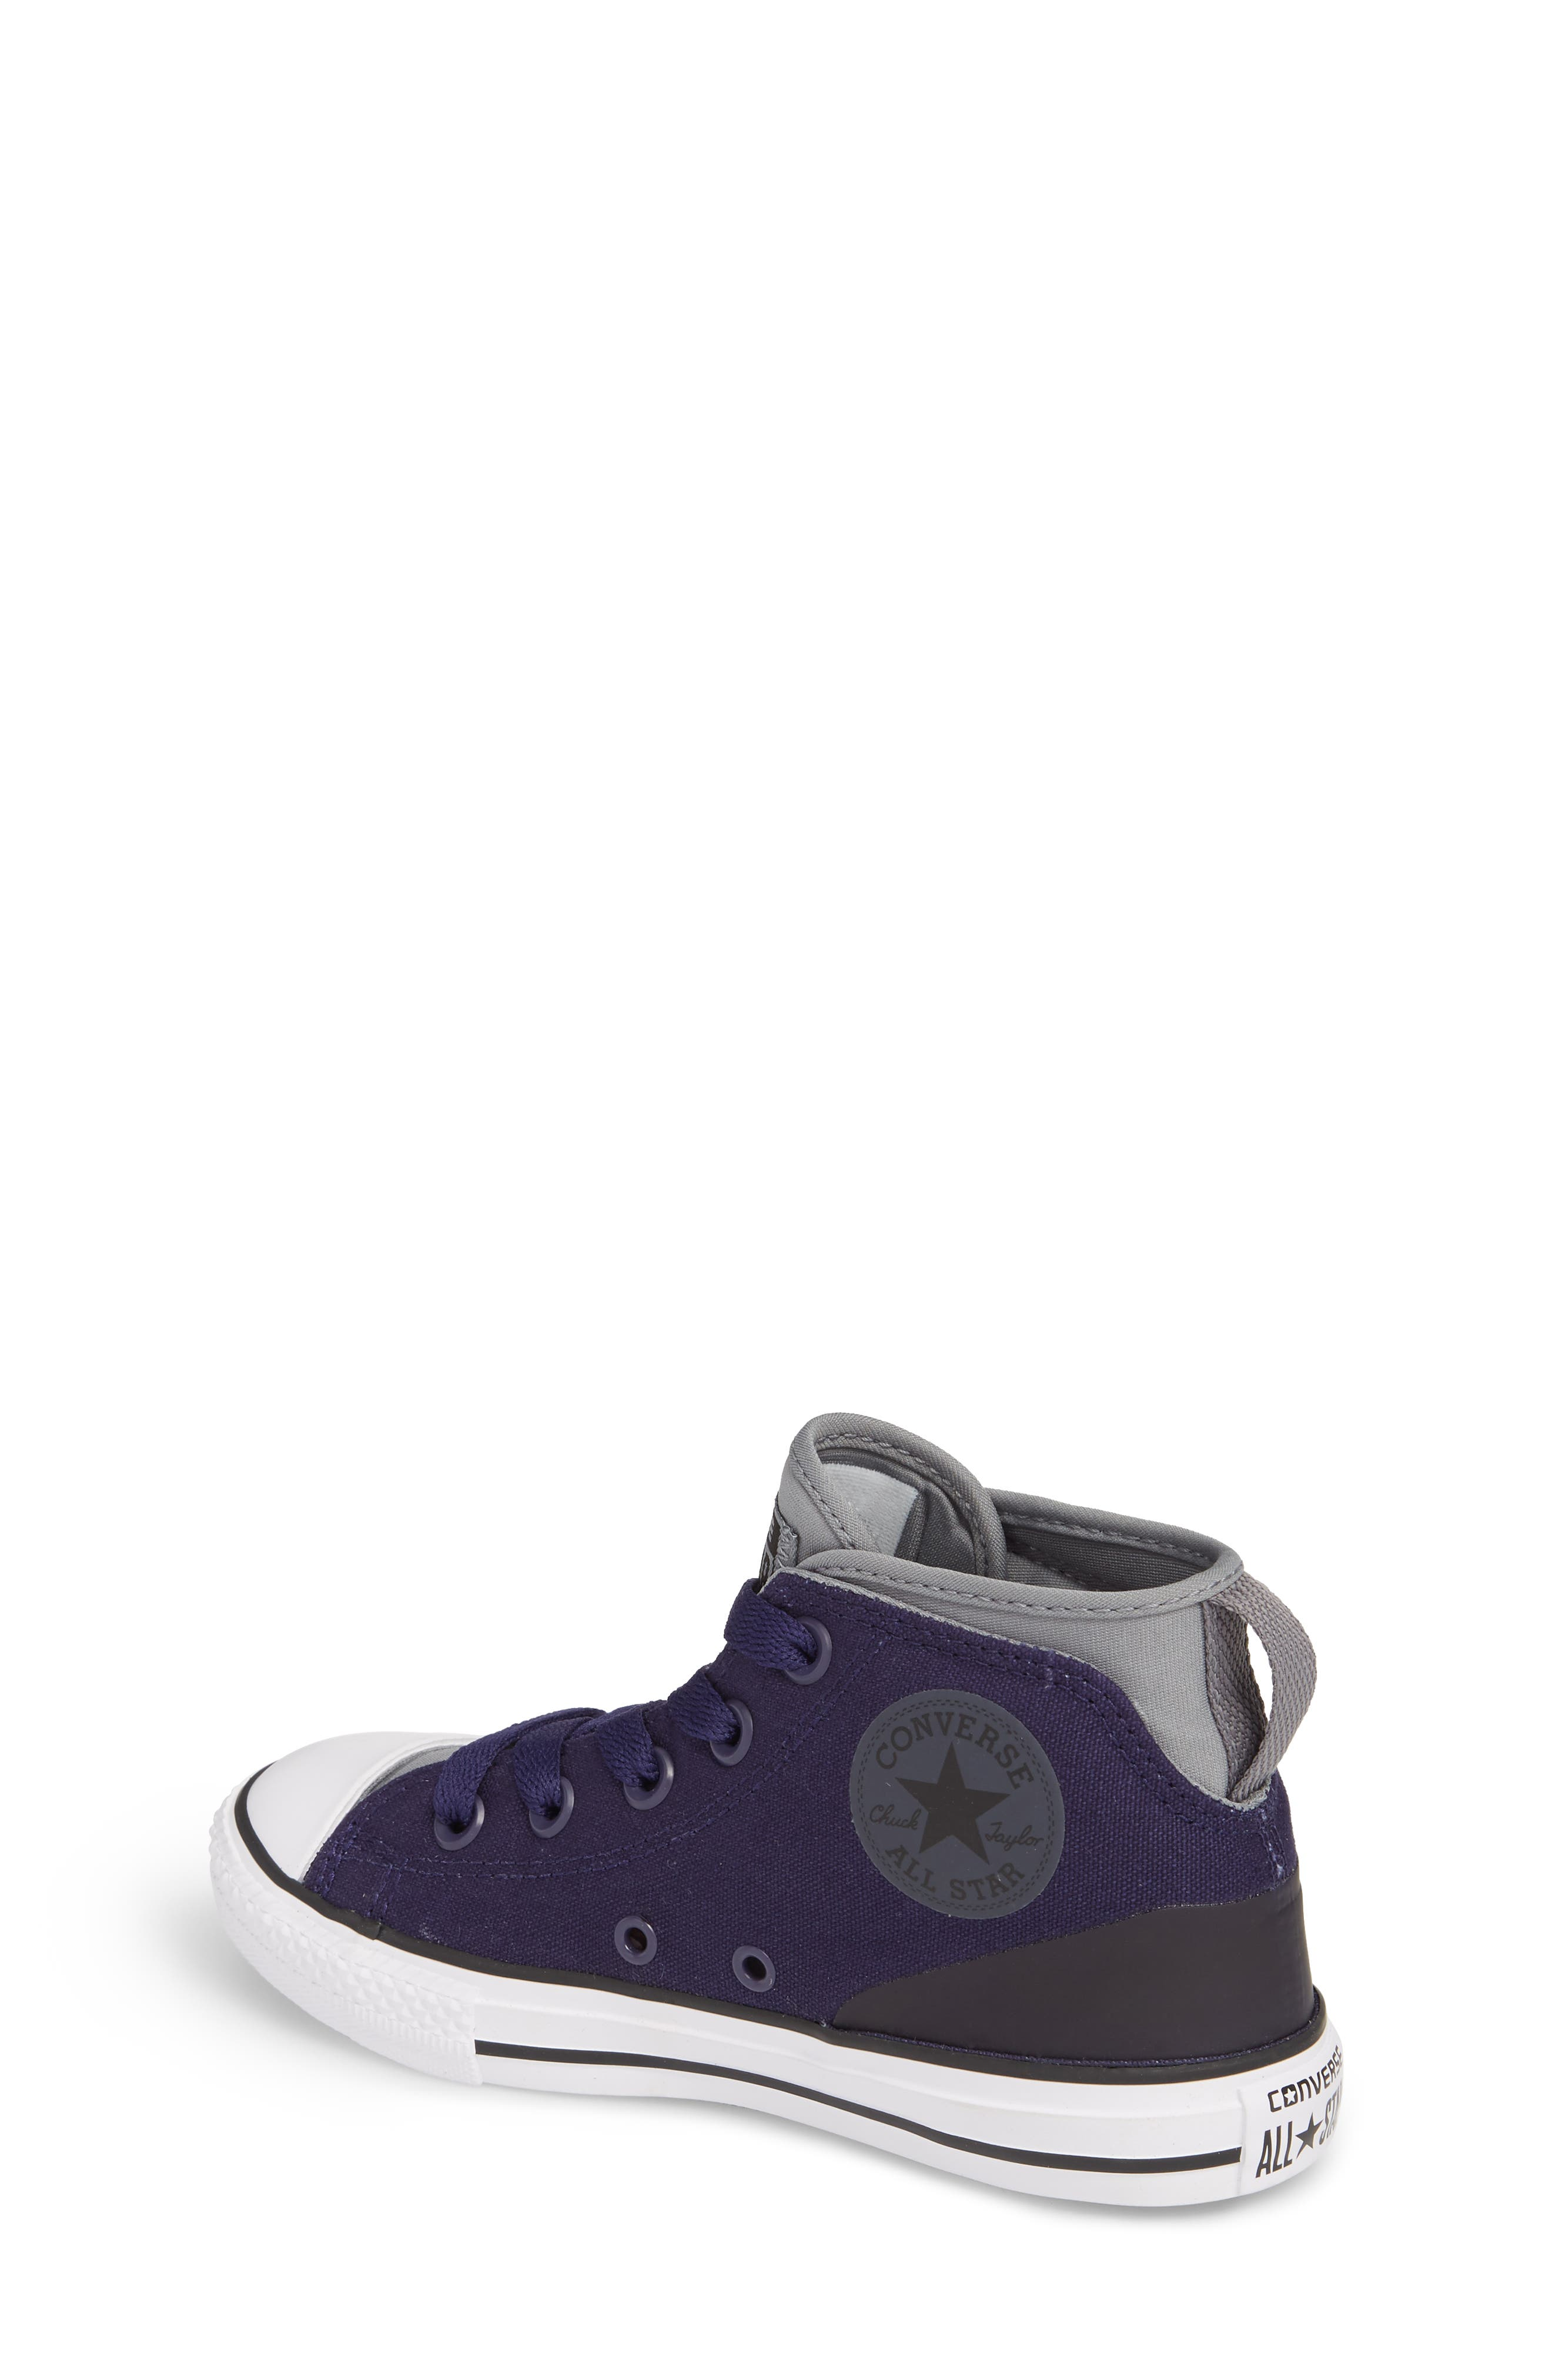 Chuck Taylor<sup>®</sup> All Star<sup>®</sup> Syde Street High Top Sneaker,                             Alternate thumbnail 3, color,